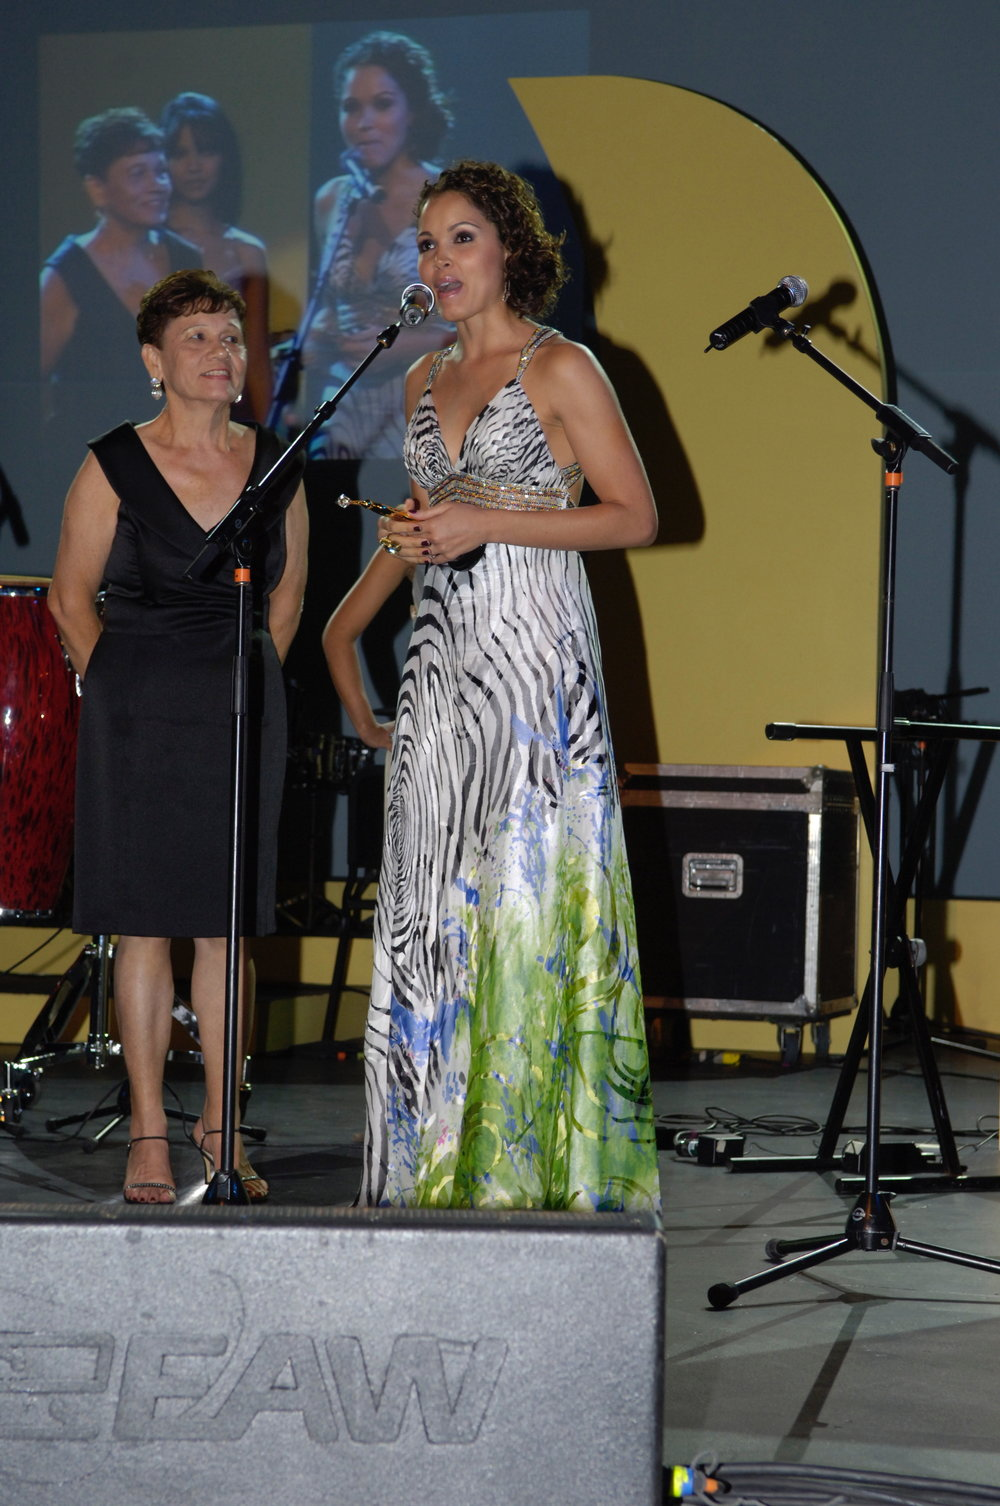 I received an award at the Hispanic Heritage Awards and I brought my mom on stage to dedicate the award to her. -